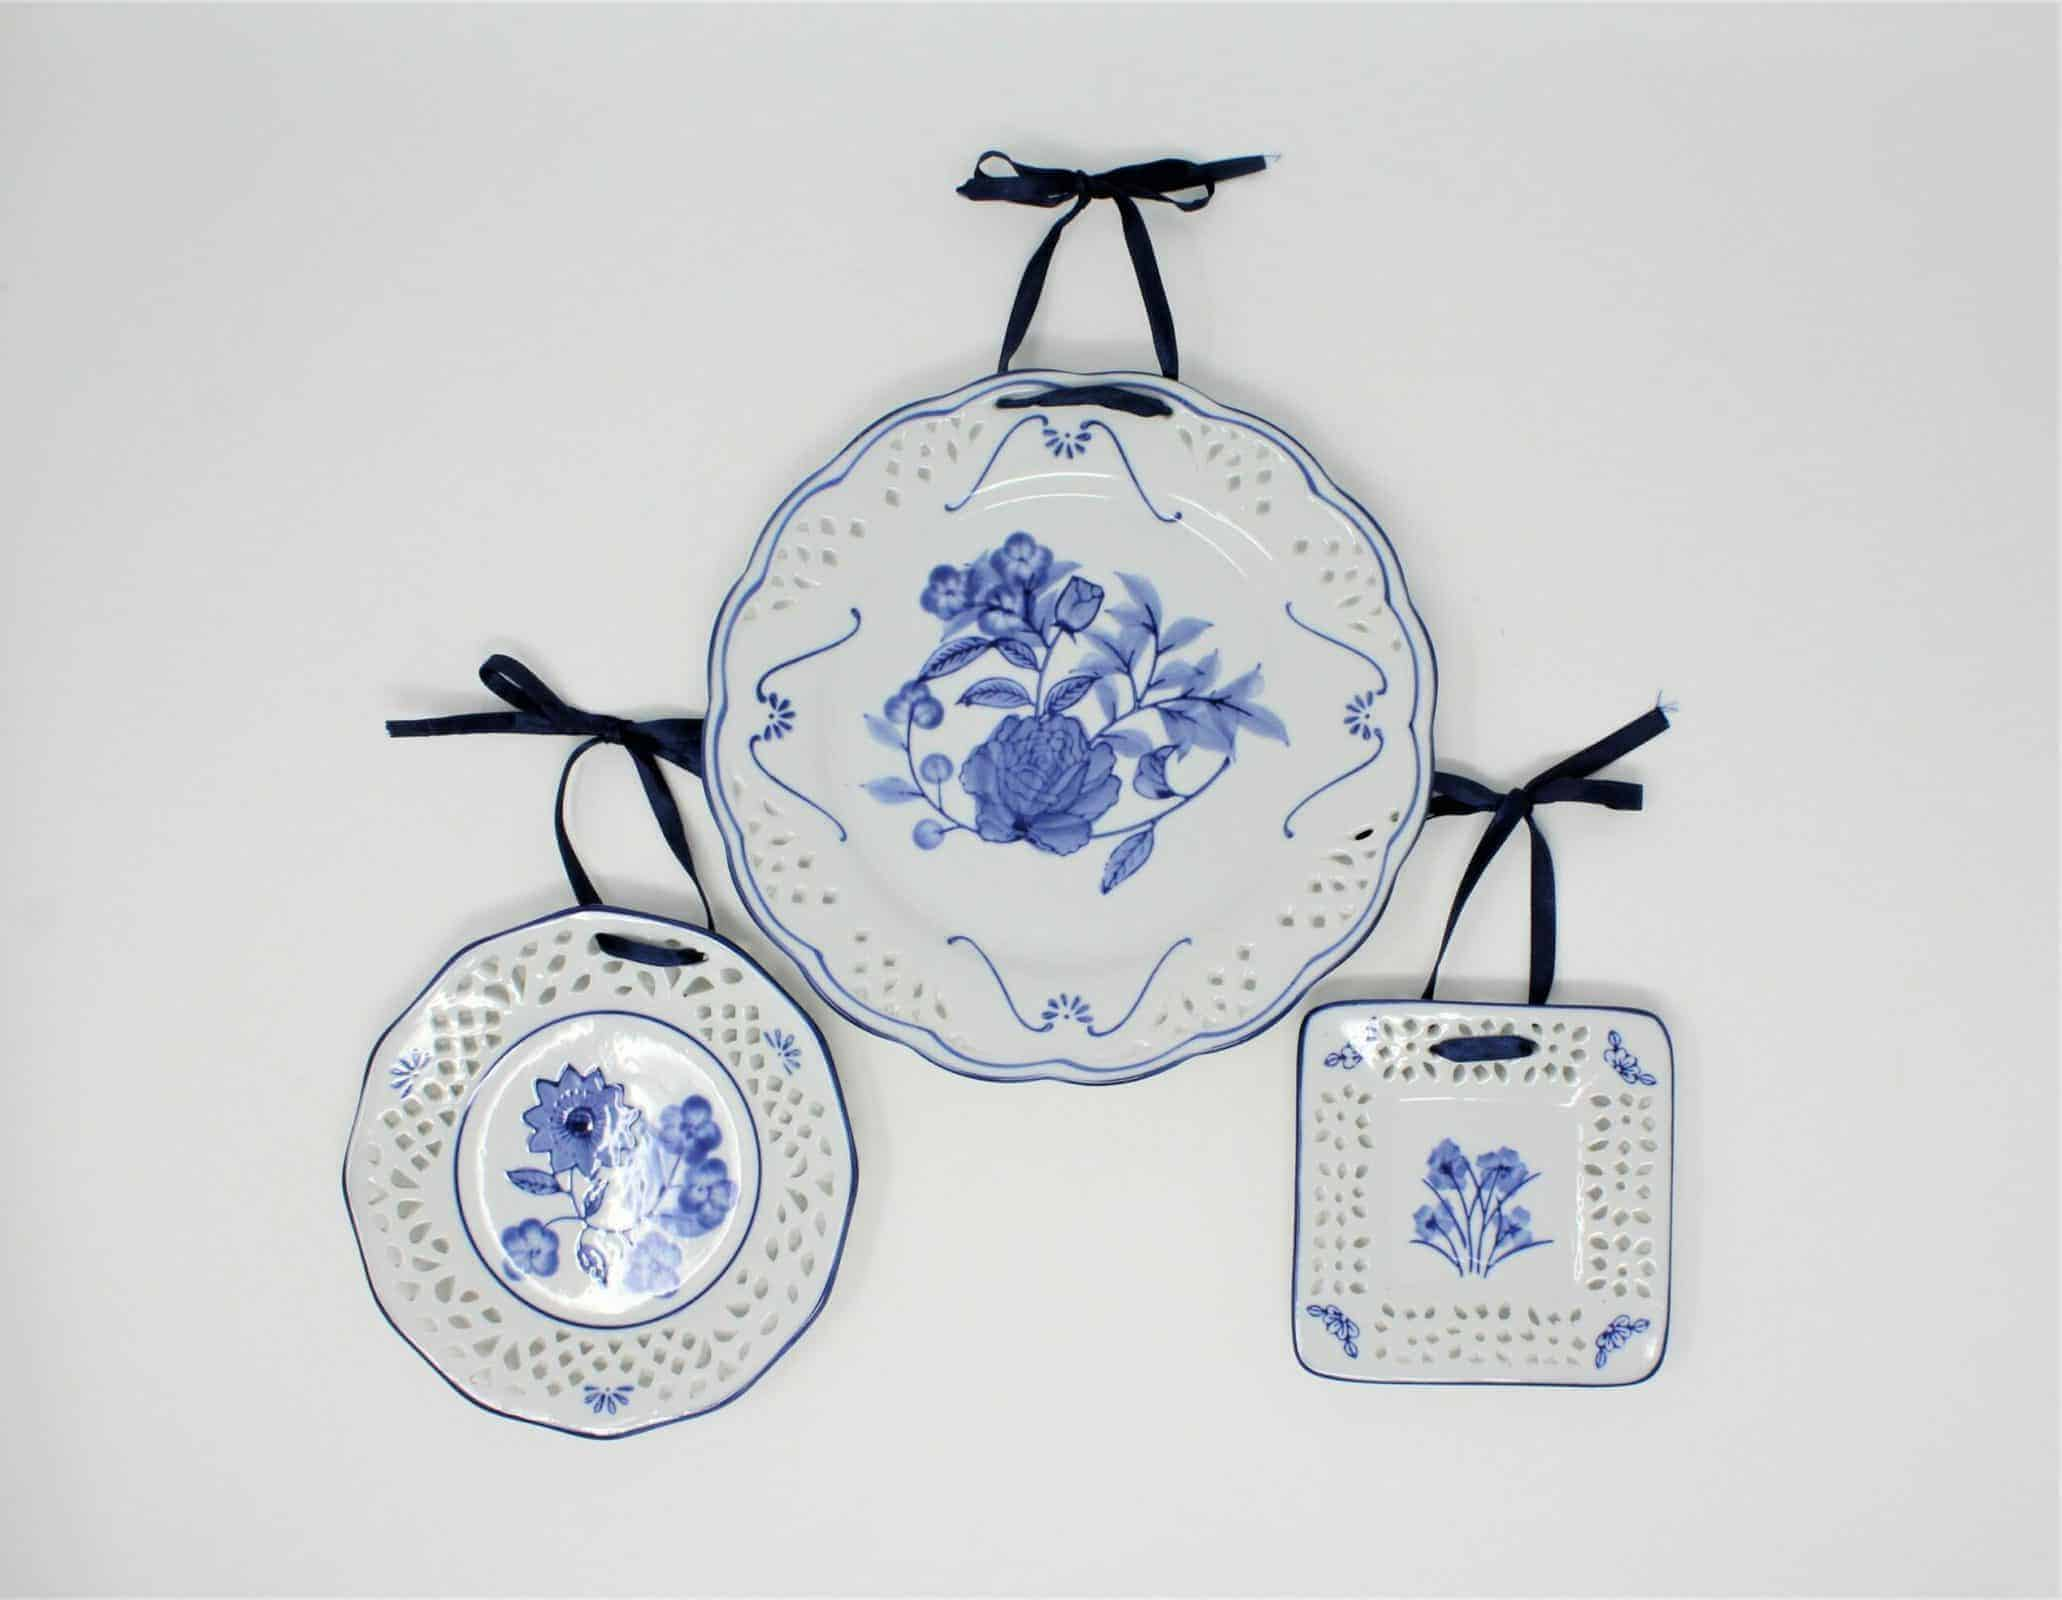 Decorative Plates Blue And White Floral Open Work By Wmg Set Of 3 Sold Antigo Trunk